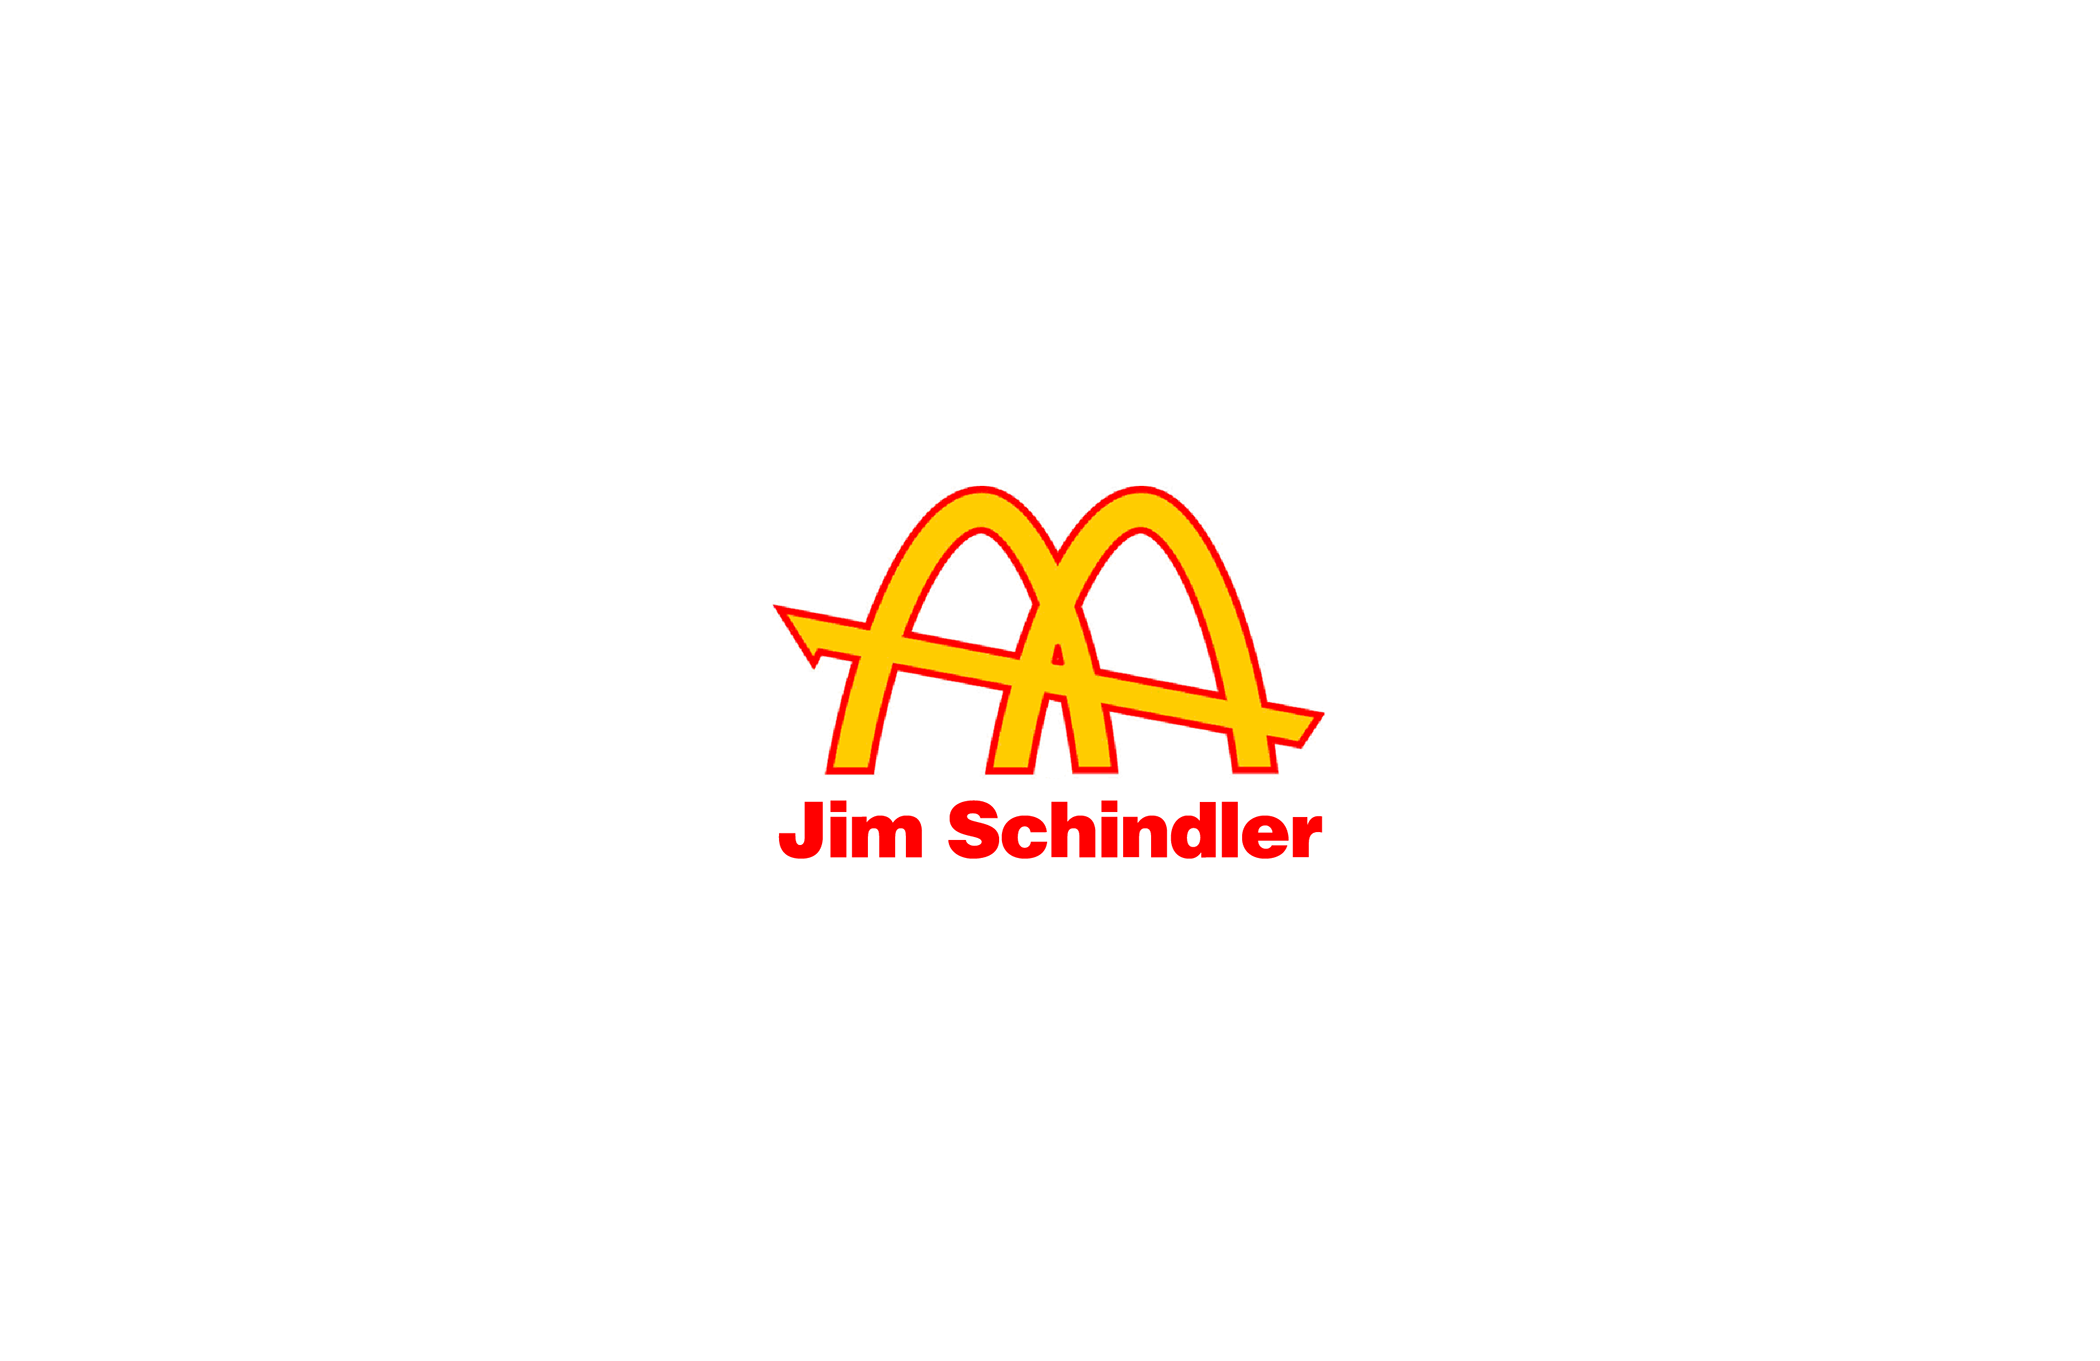 Jim Schindler - Designer of the McDonald's logo